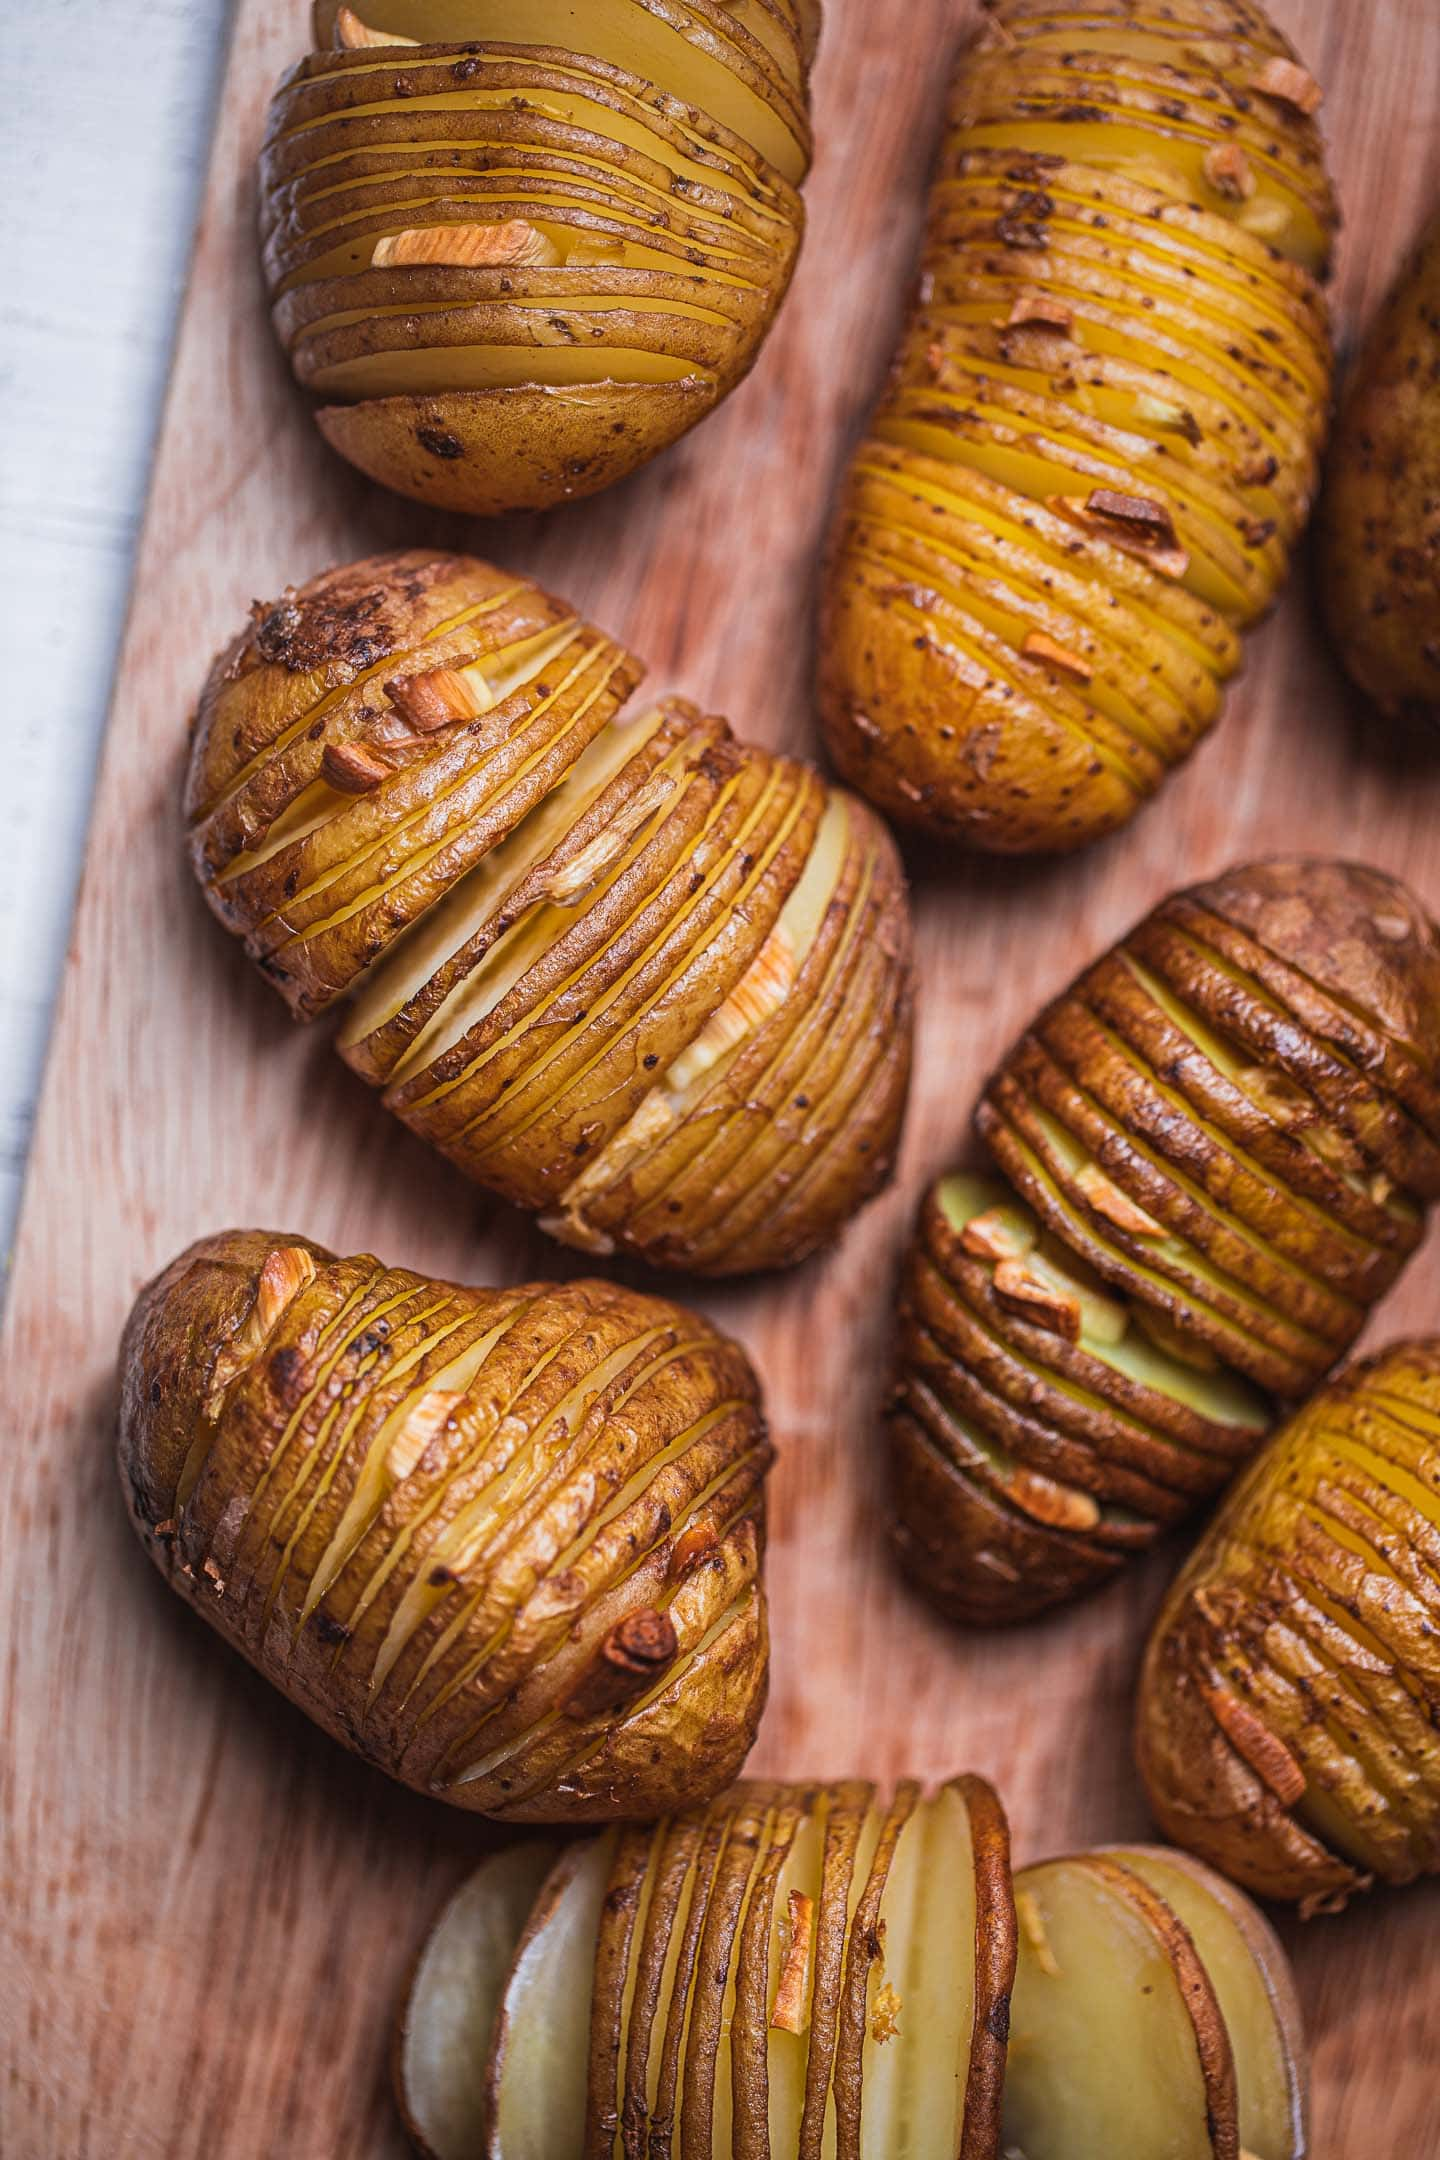 Hasselback potatoes on a wooden board with garlic and ginger